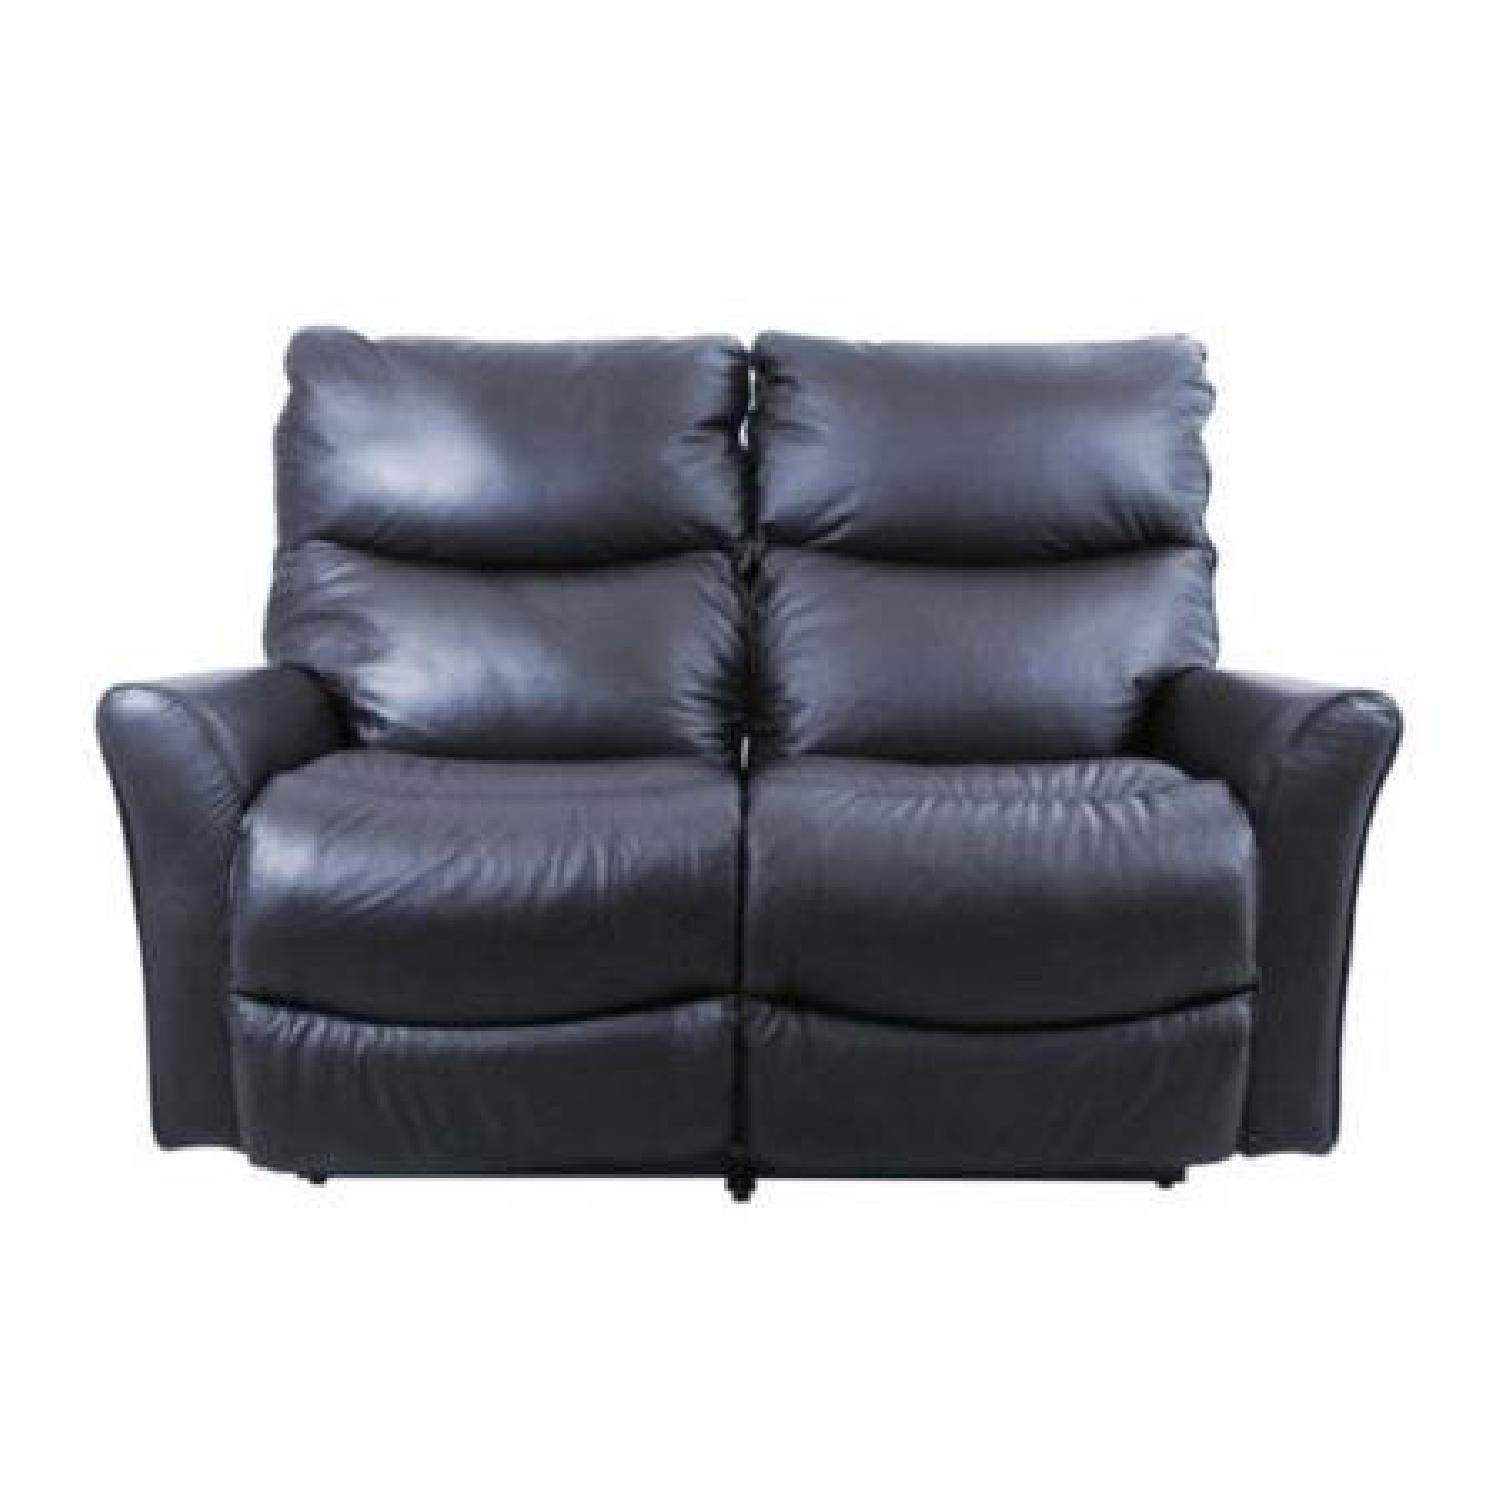 Cool La Z Boy Rowan Leather Double Recliner Loveseat Aptdeco Creativecarmelina Interior Chair Design Creativecarmelinacom